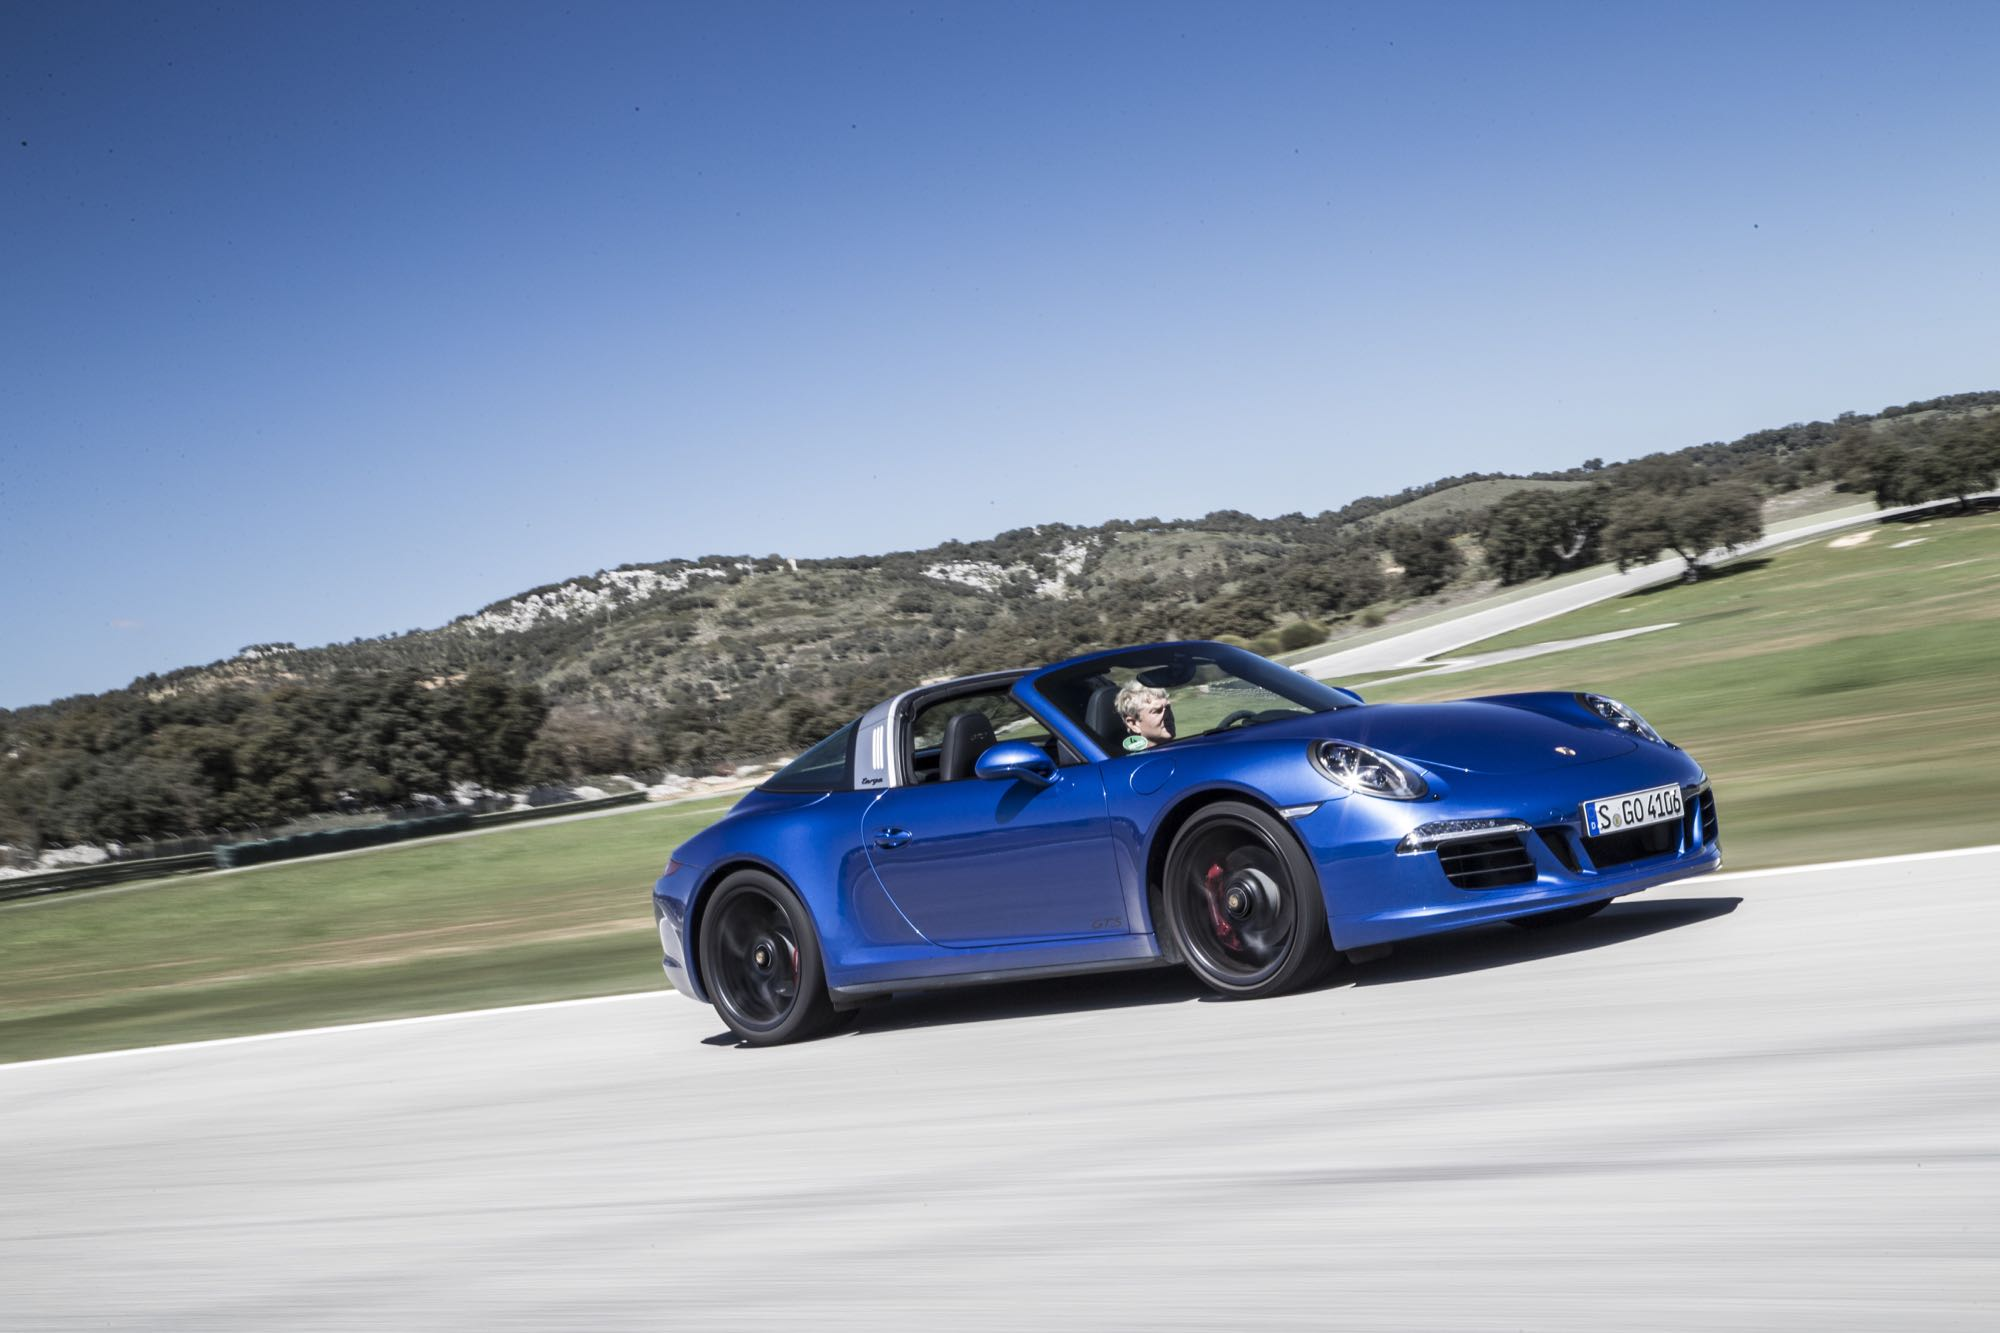 2015 porsche 911 targa 4 gts review caradvice. Black Bedroom Furniture Sets. Home Design Ideas